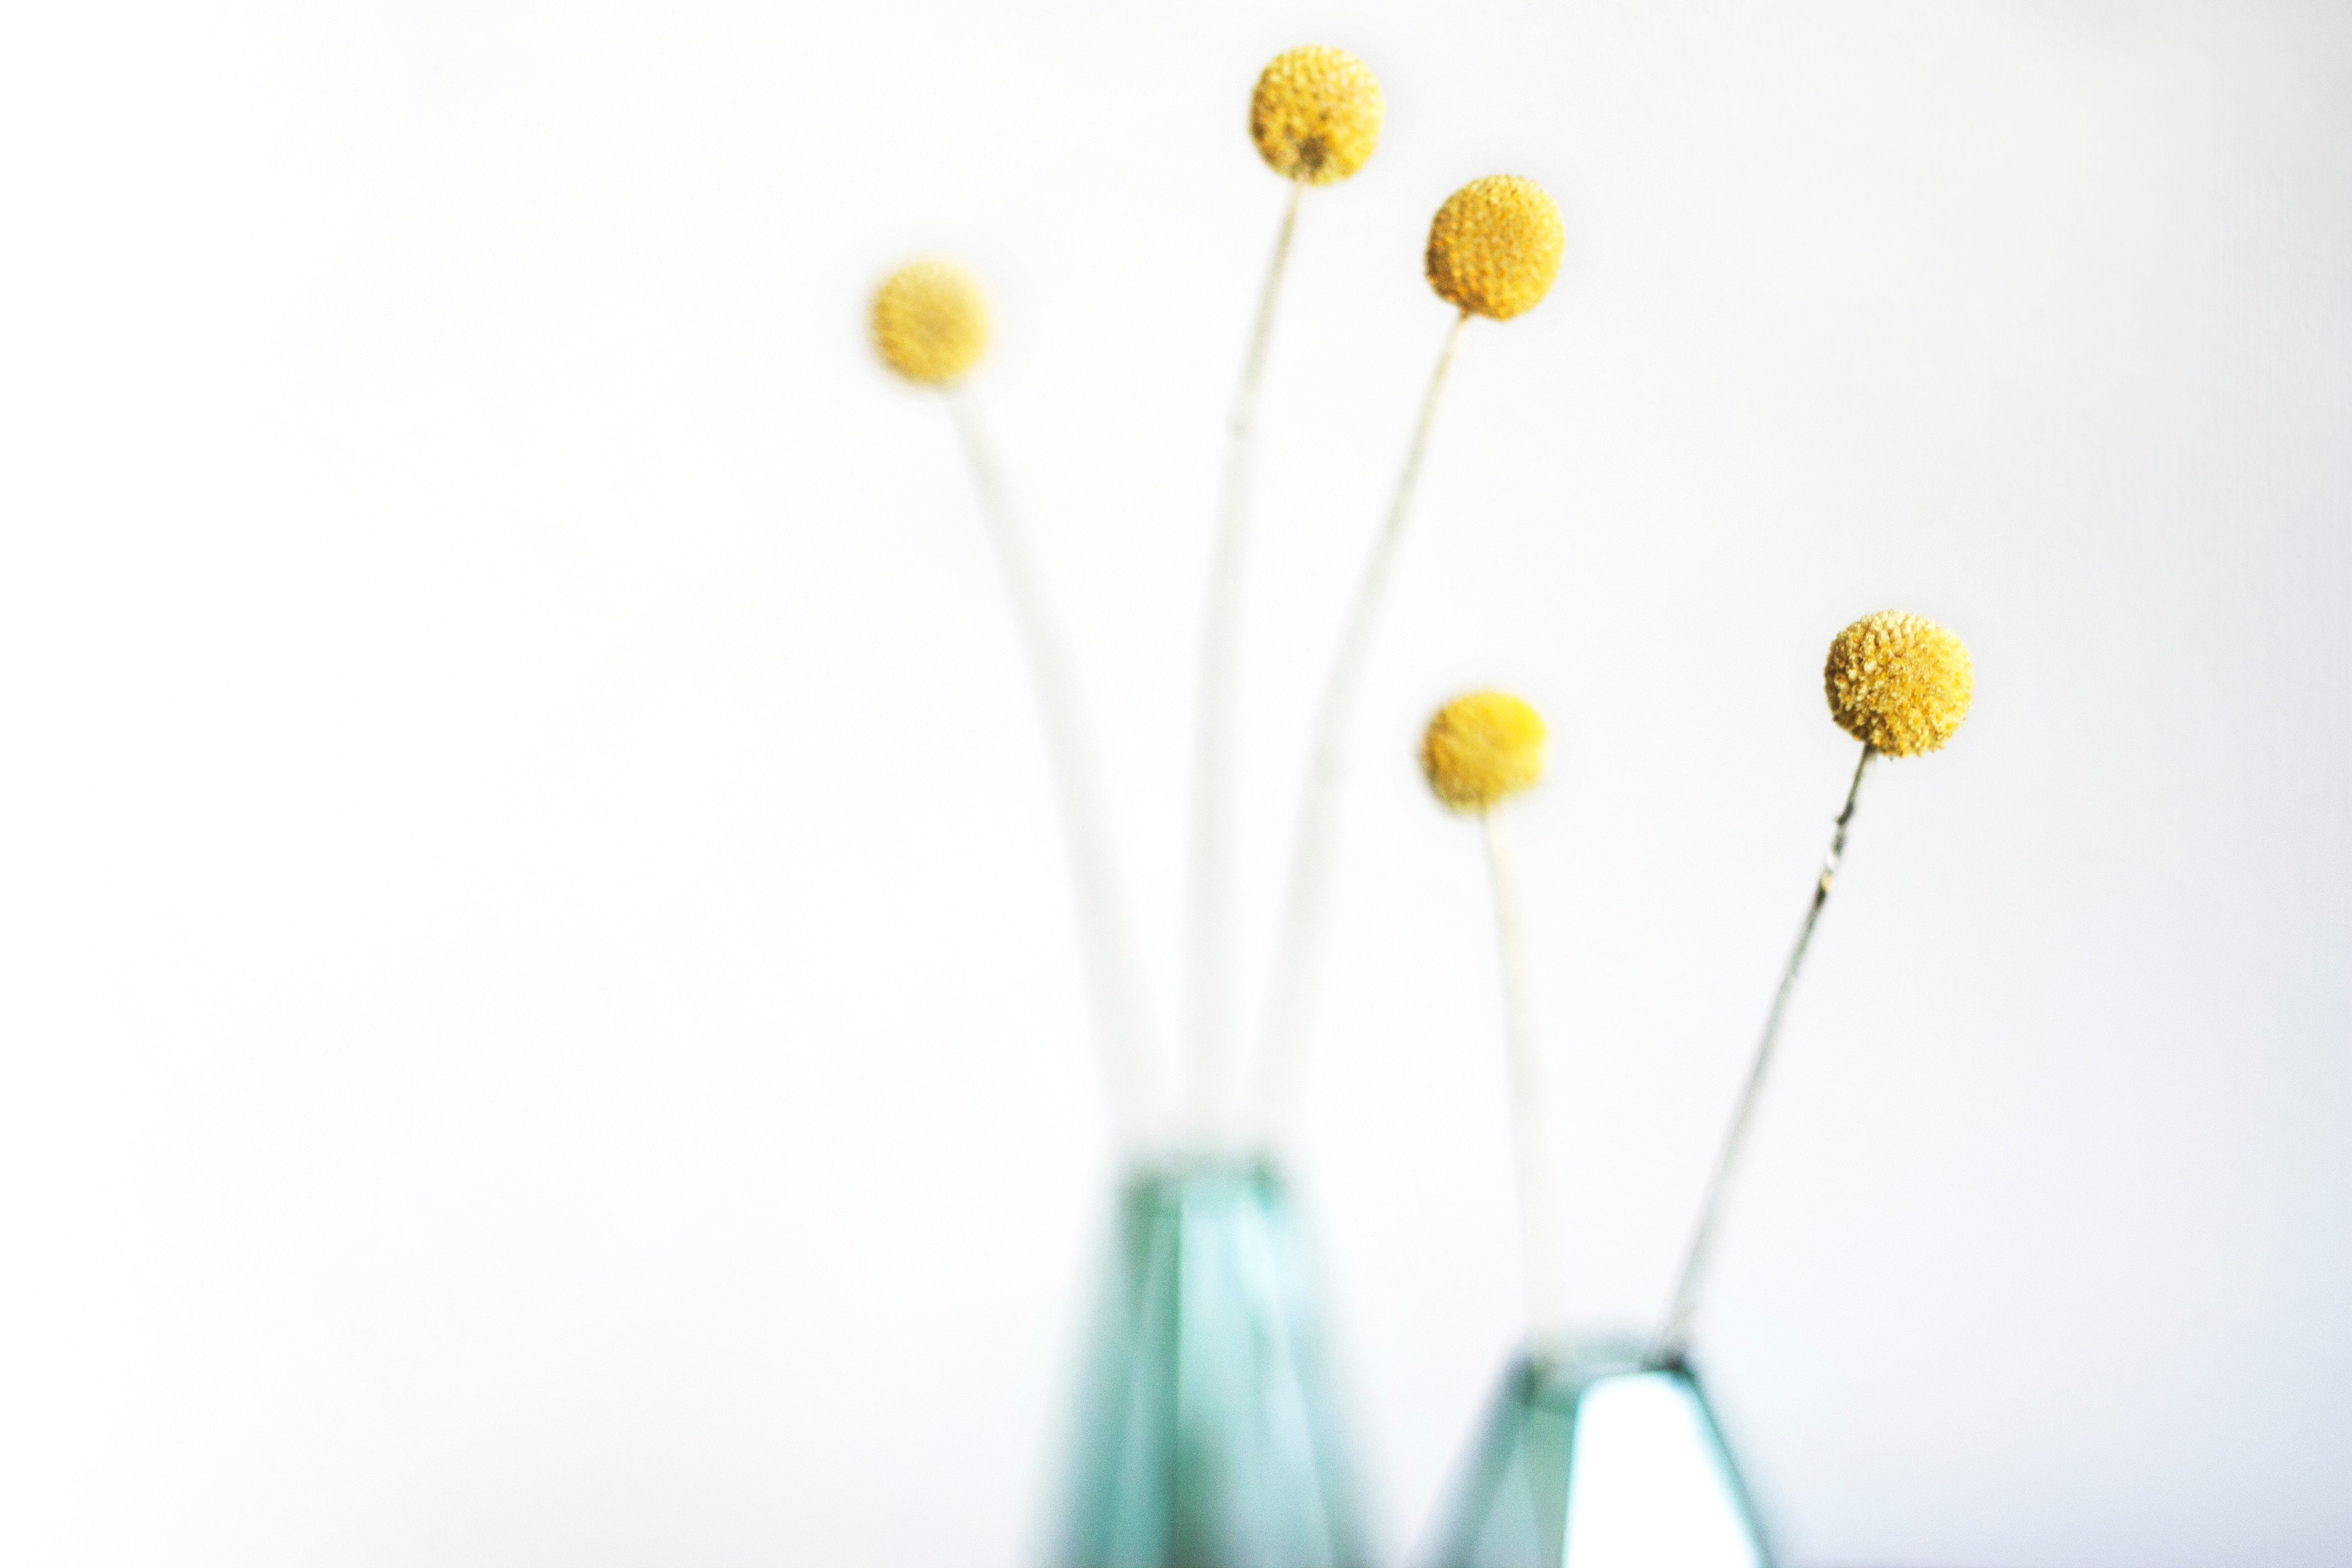 Space clearing can include adding flowers to your home to freshen and brighten it.